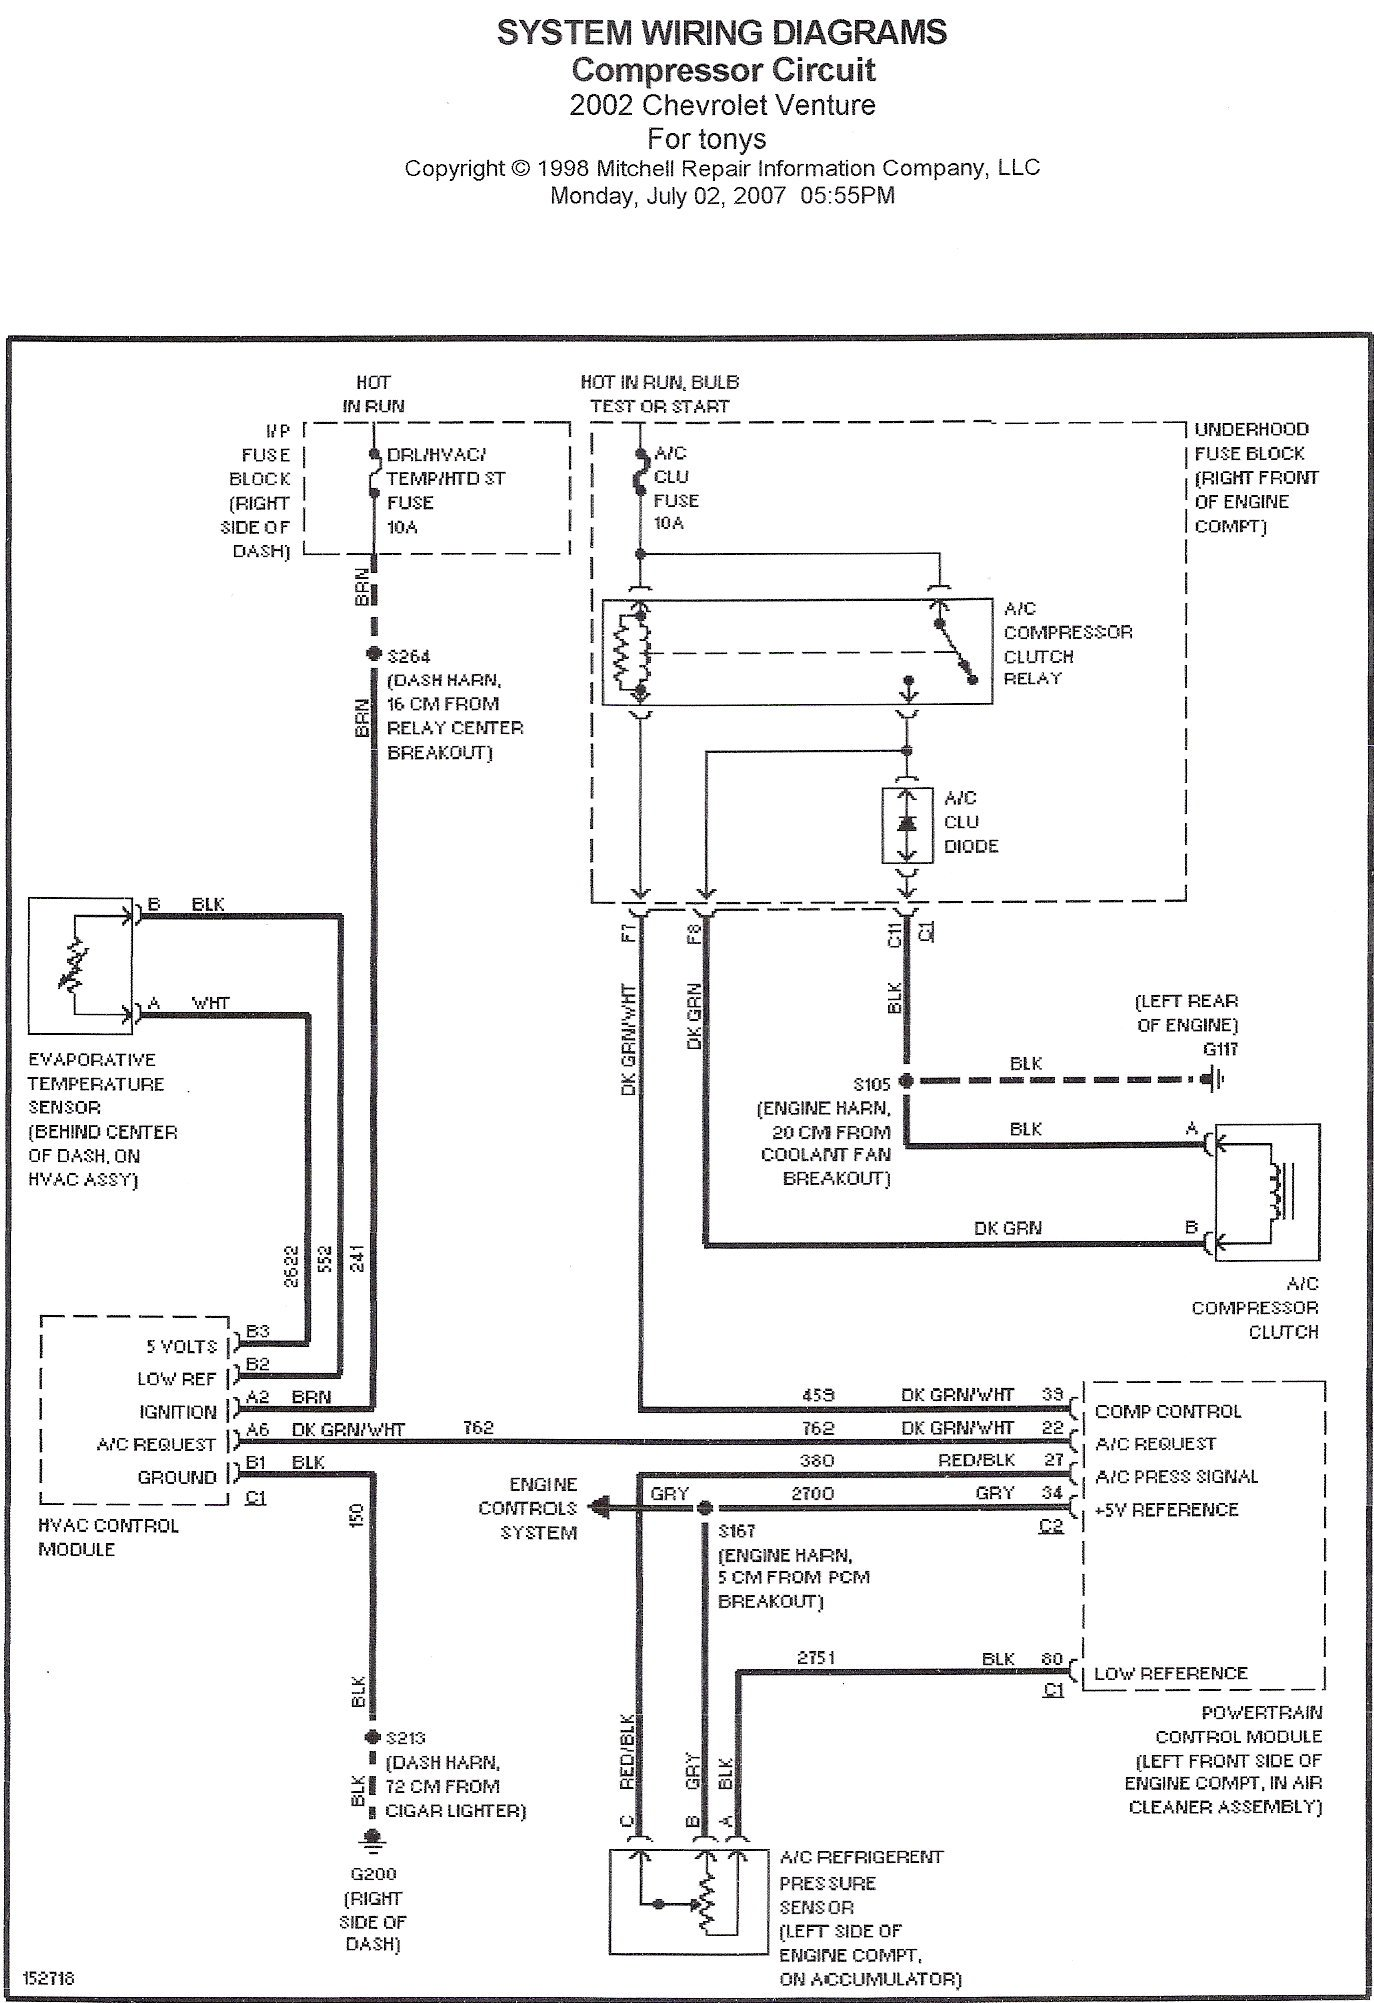 Diagram  Freighliner A C Clutch Wire Diagram Full Version Hd Quality Wire Diagram